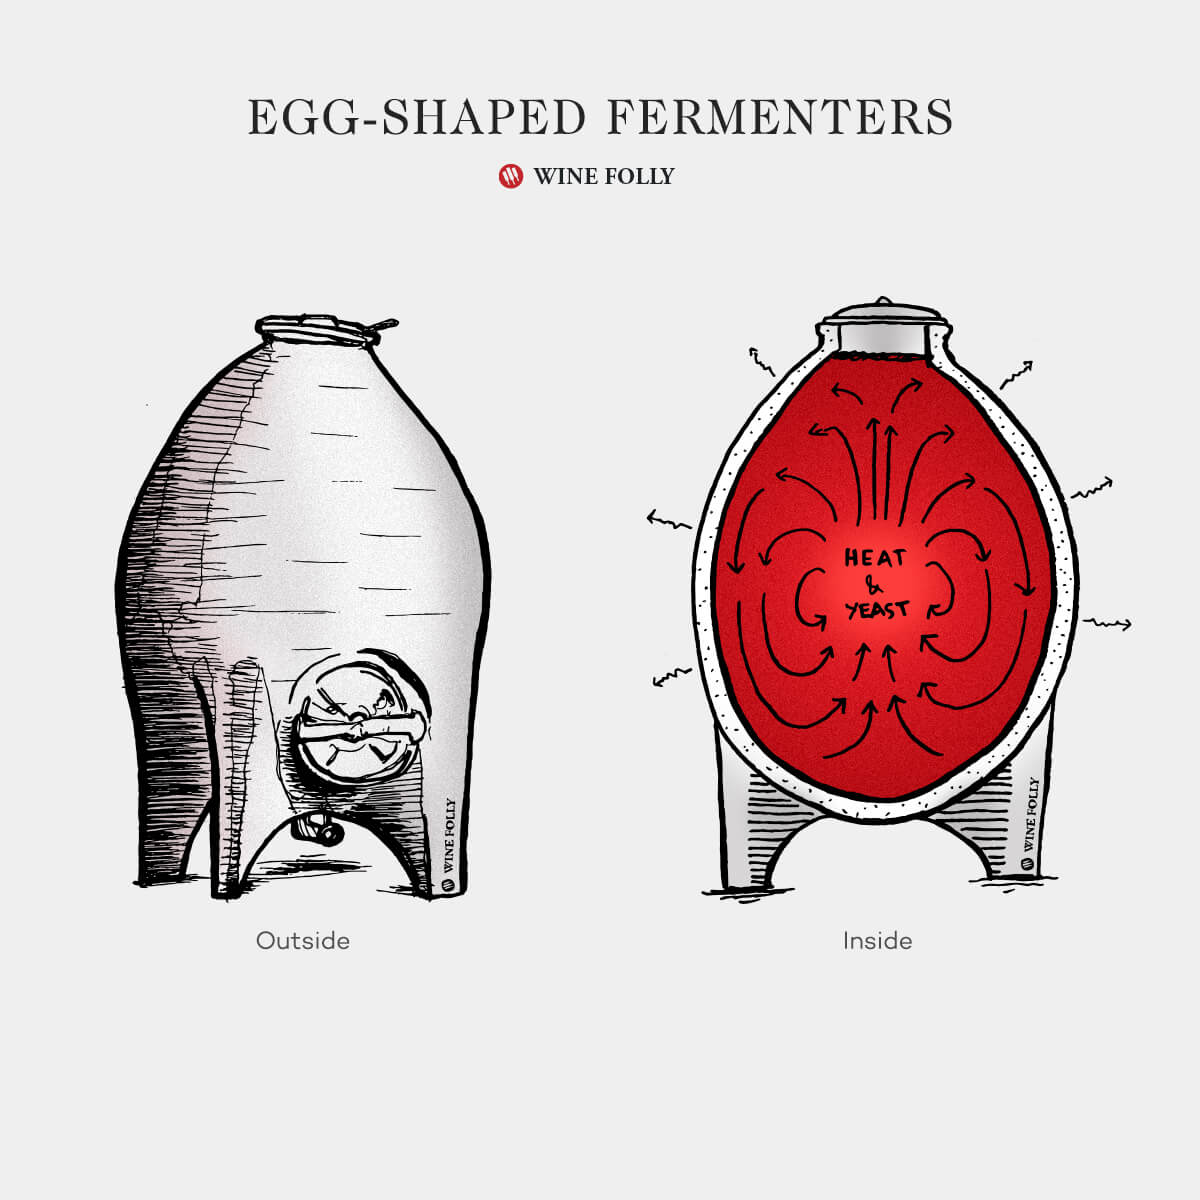 egg-shaped-fermenters-tanks-winefolly-illustration1200x1200